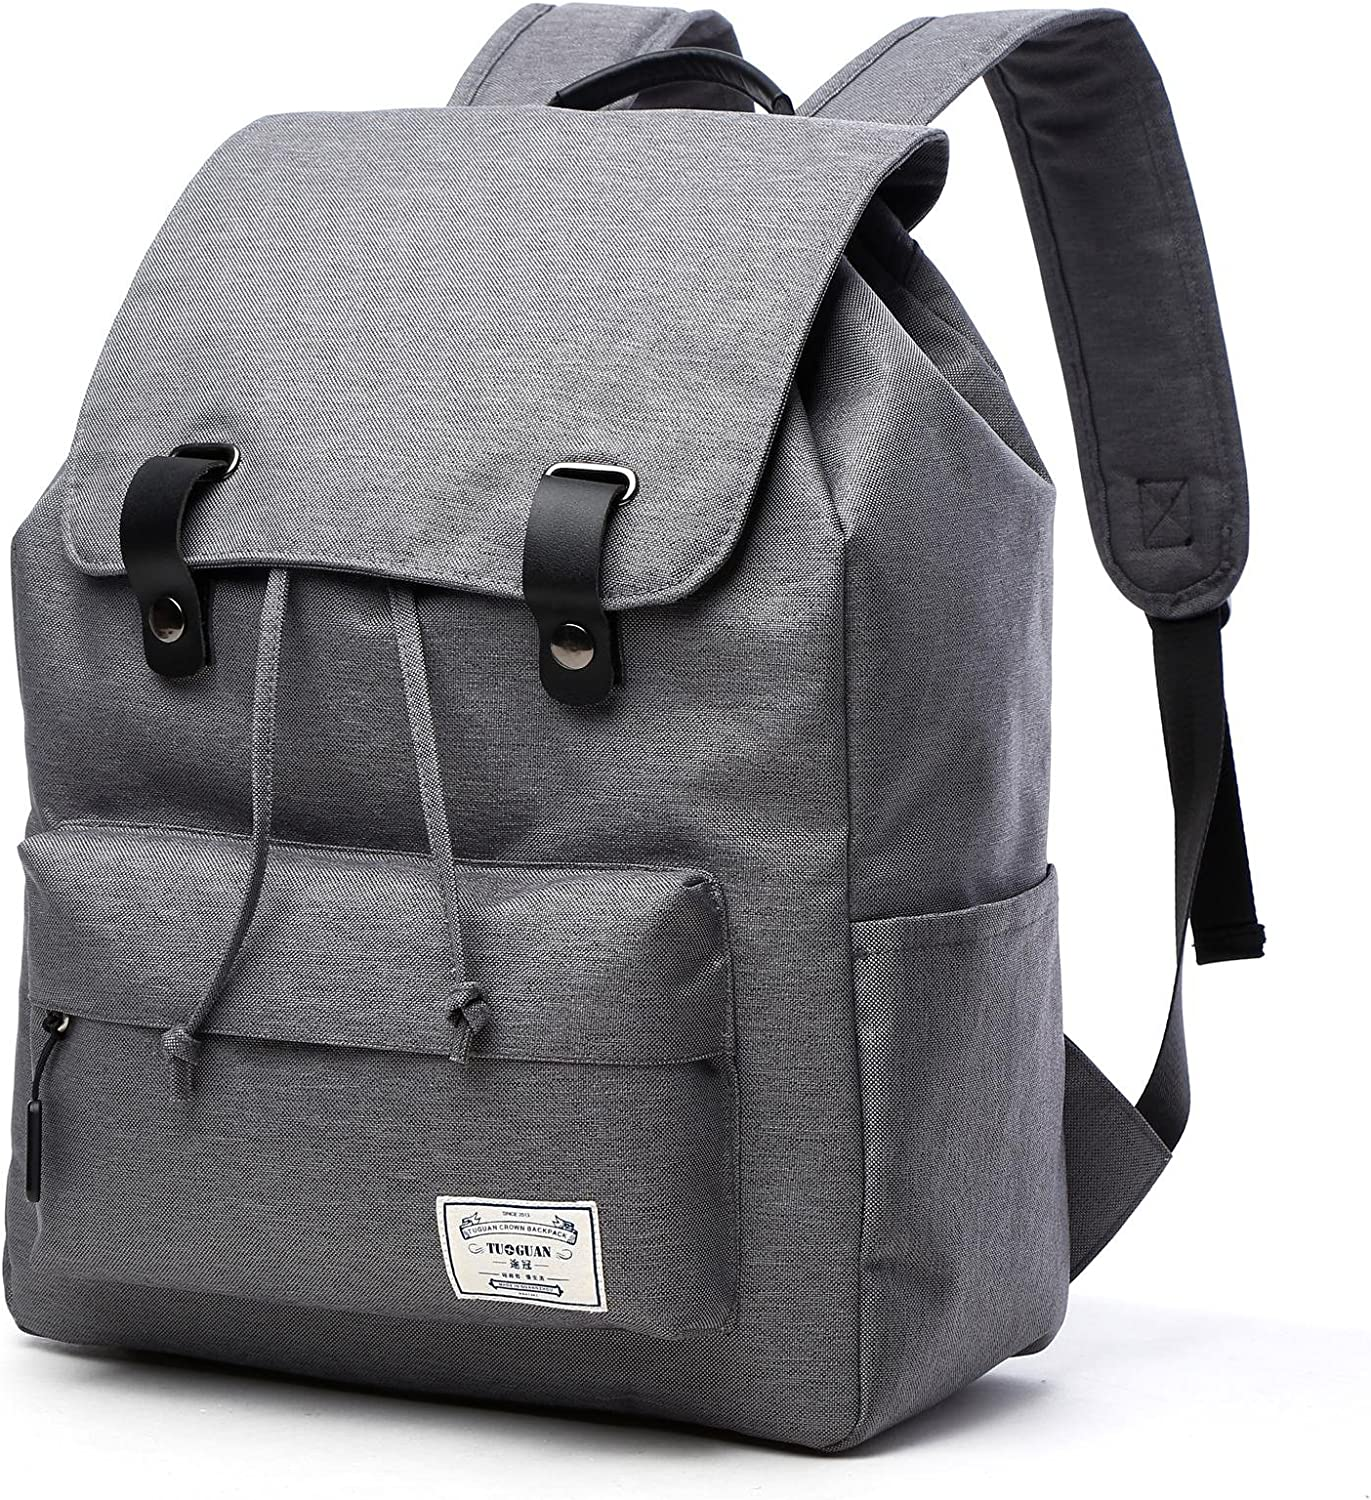 Loiee Max 62% OFF Vintage Canvas Super-cheap Backpack Casual Rucksack Fits up 15.6 In to